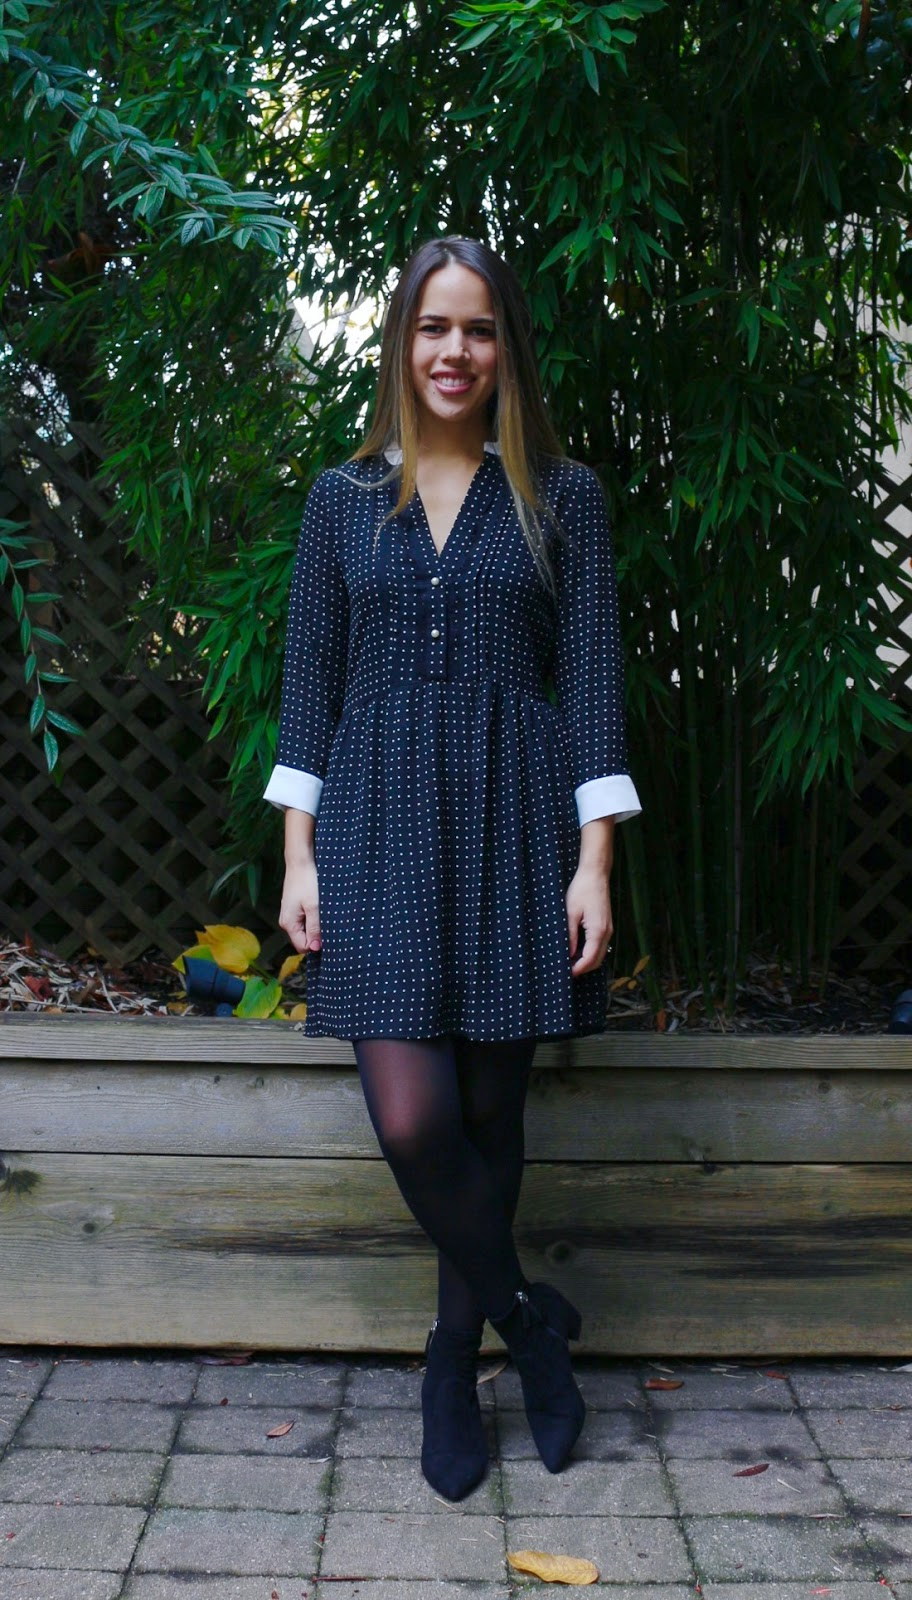 Jules in Flats - Zara Dot Dress + Steve Madden Blaire Booties (Business Casual Fall Workwear on a Budget)